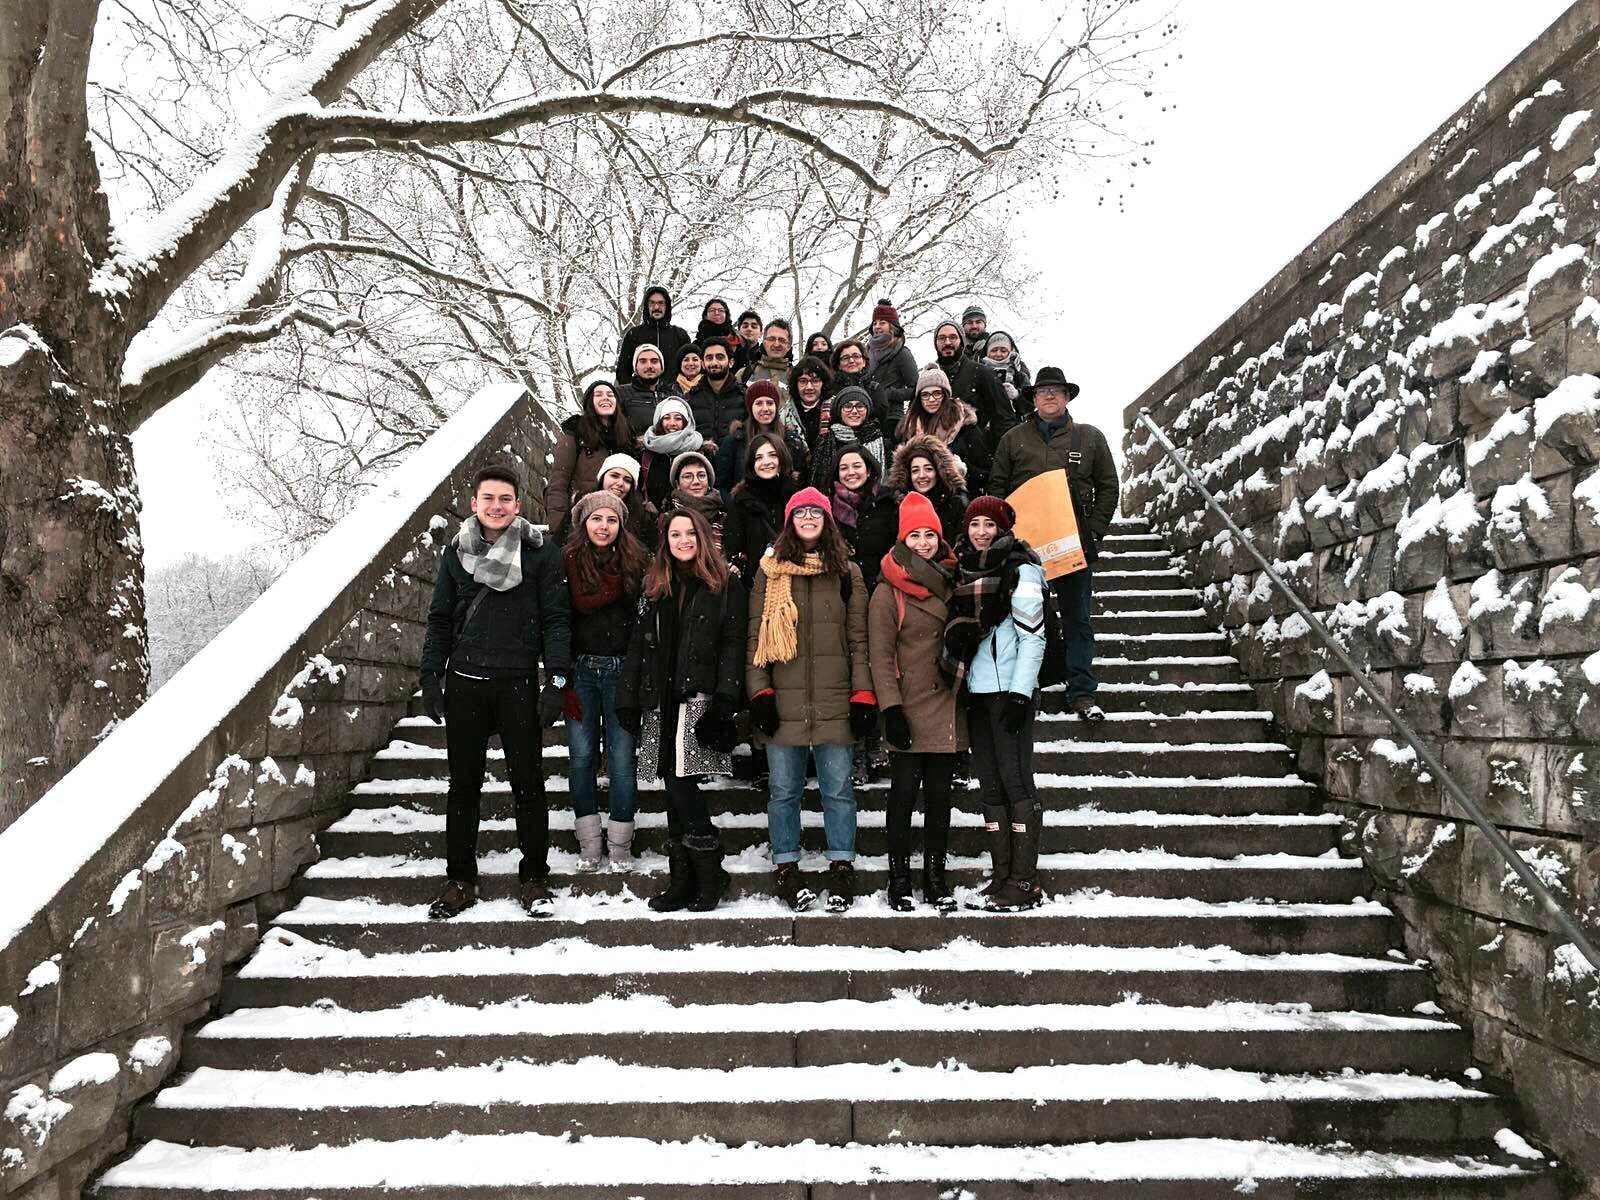 MEF University students. At the Schillerpark, Berlin. 